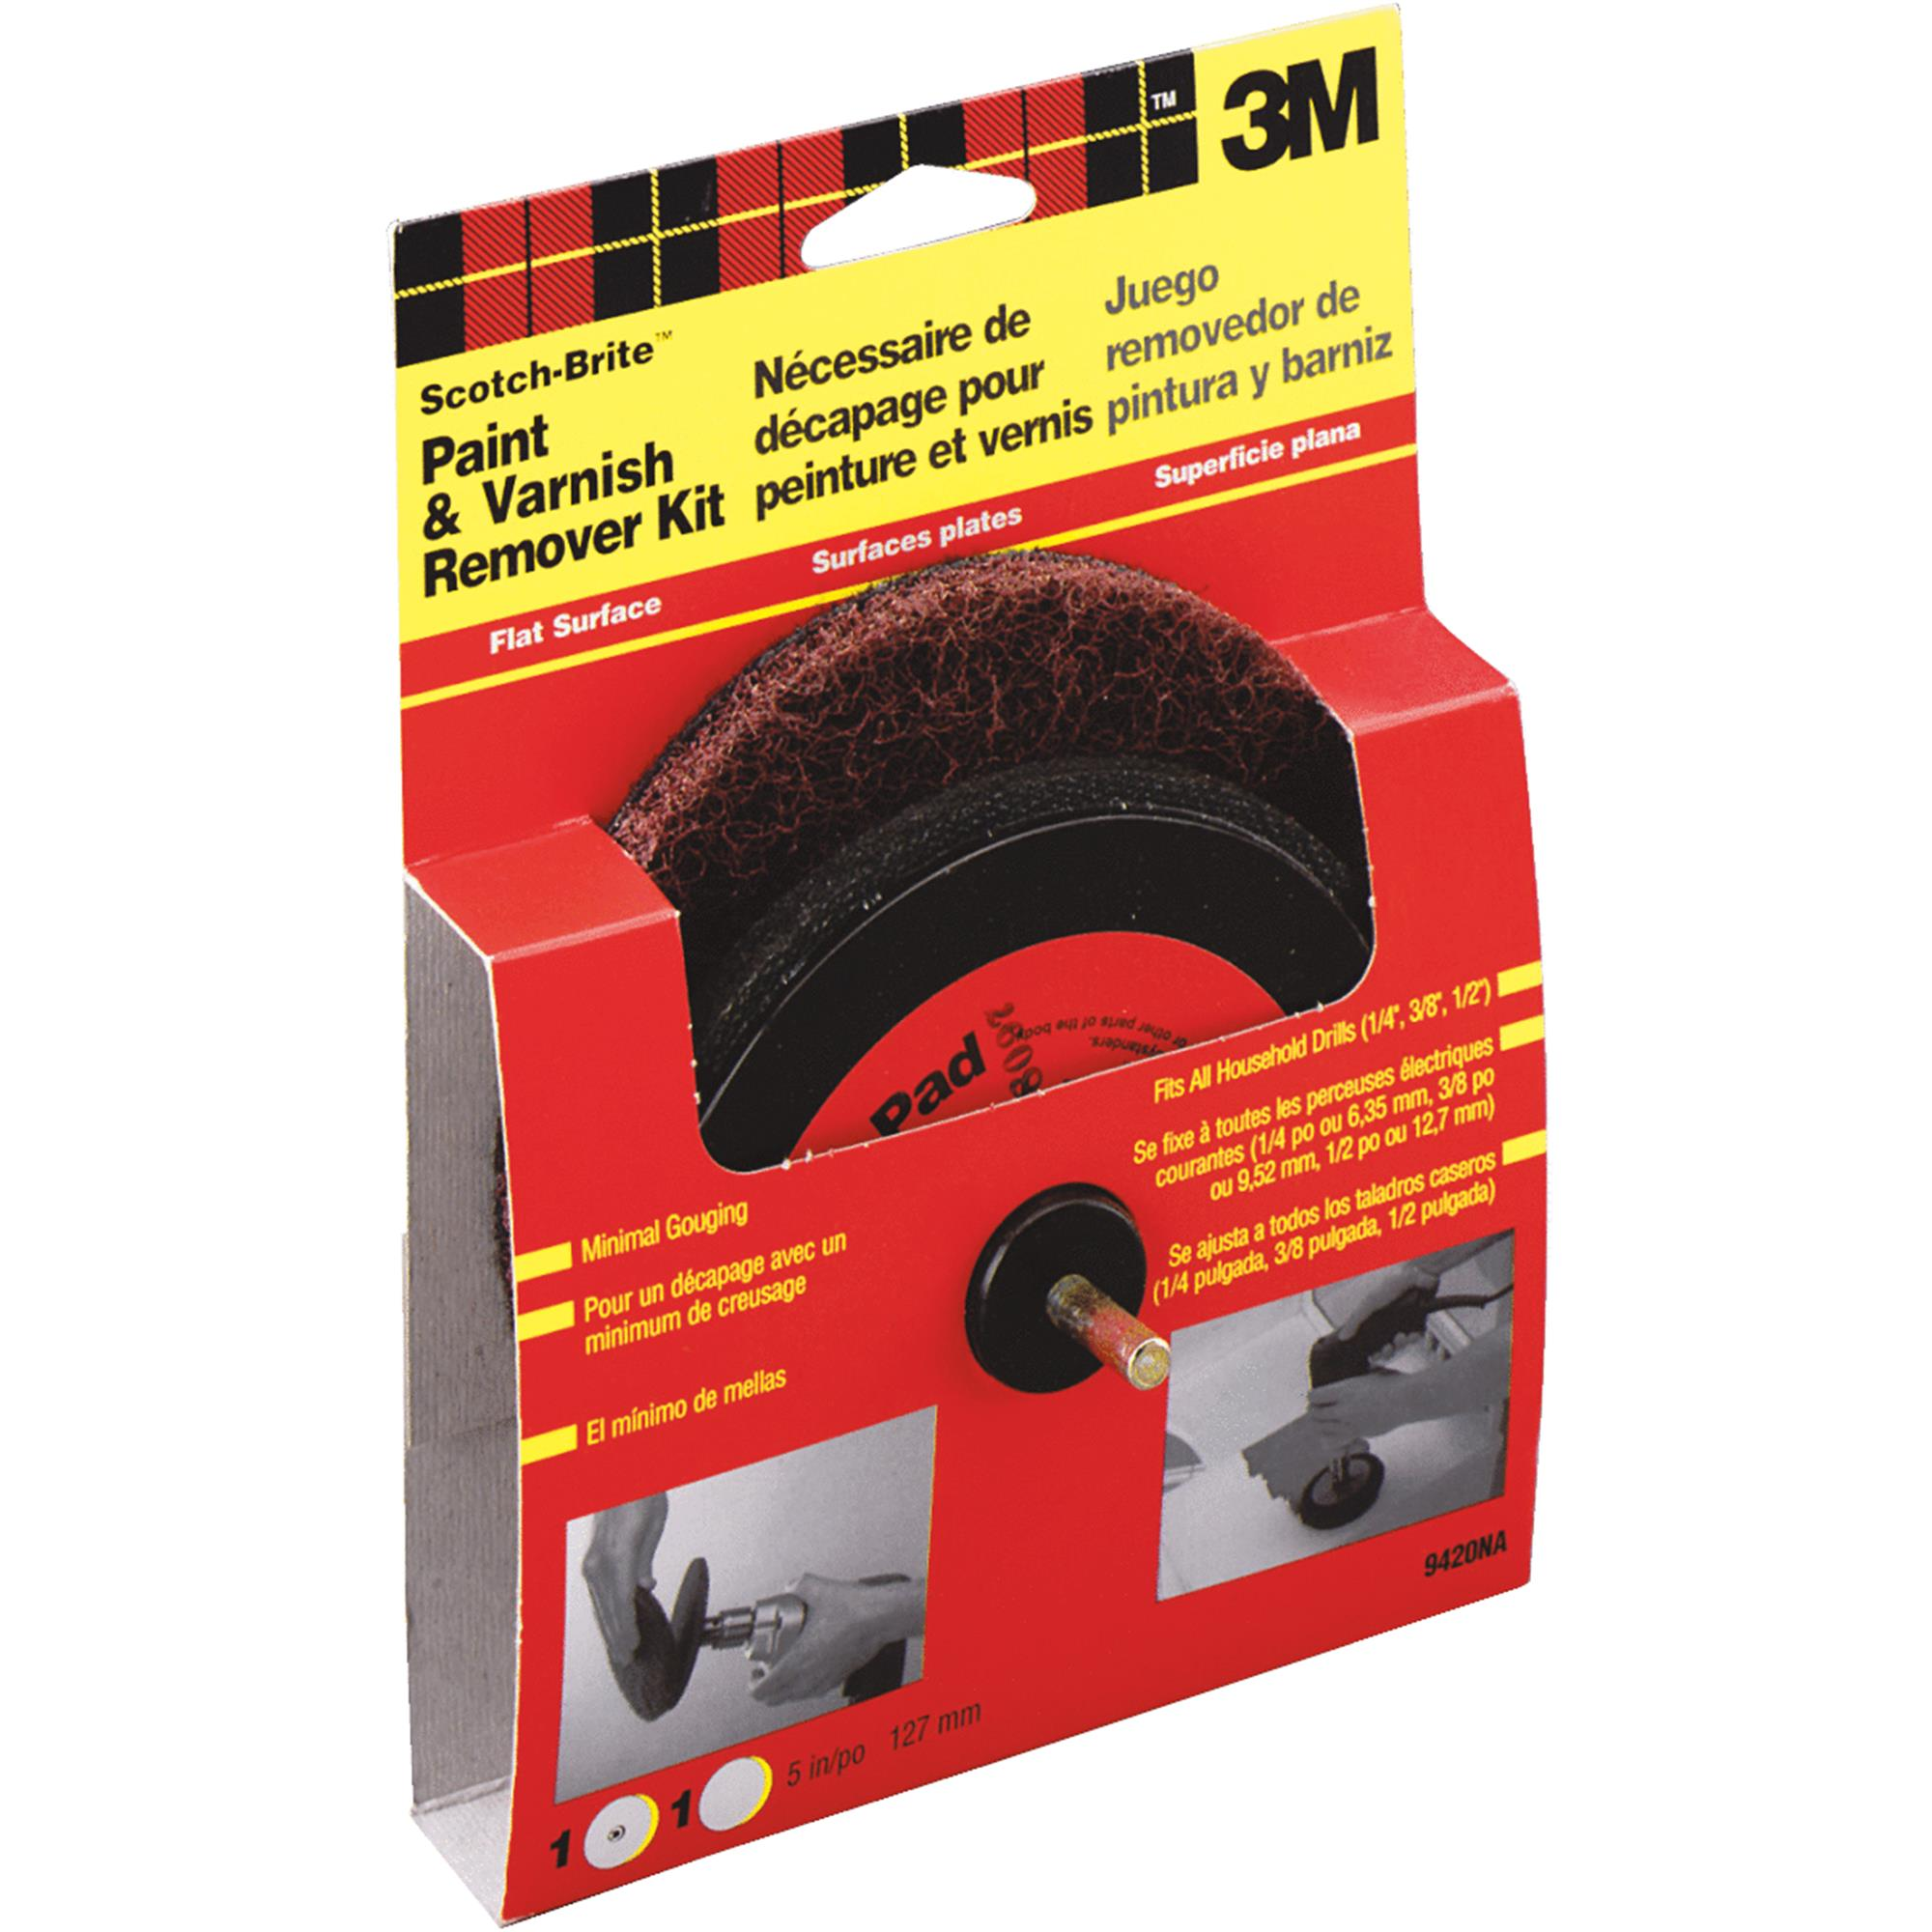 "3M 9420NA Scotch-Brite"" Paint & Varnish Remover Kit"